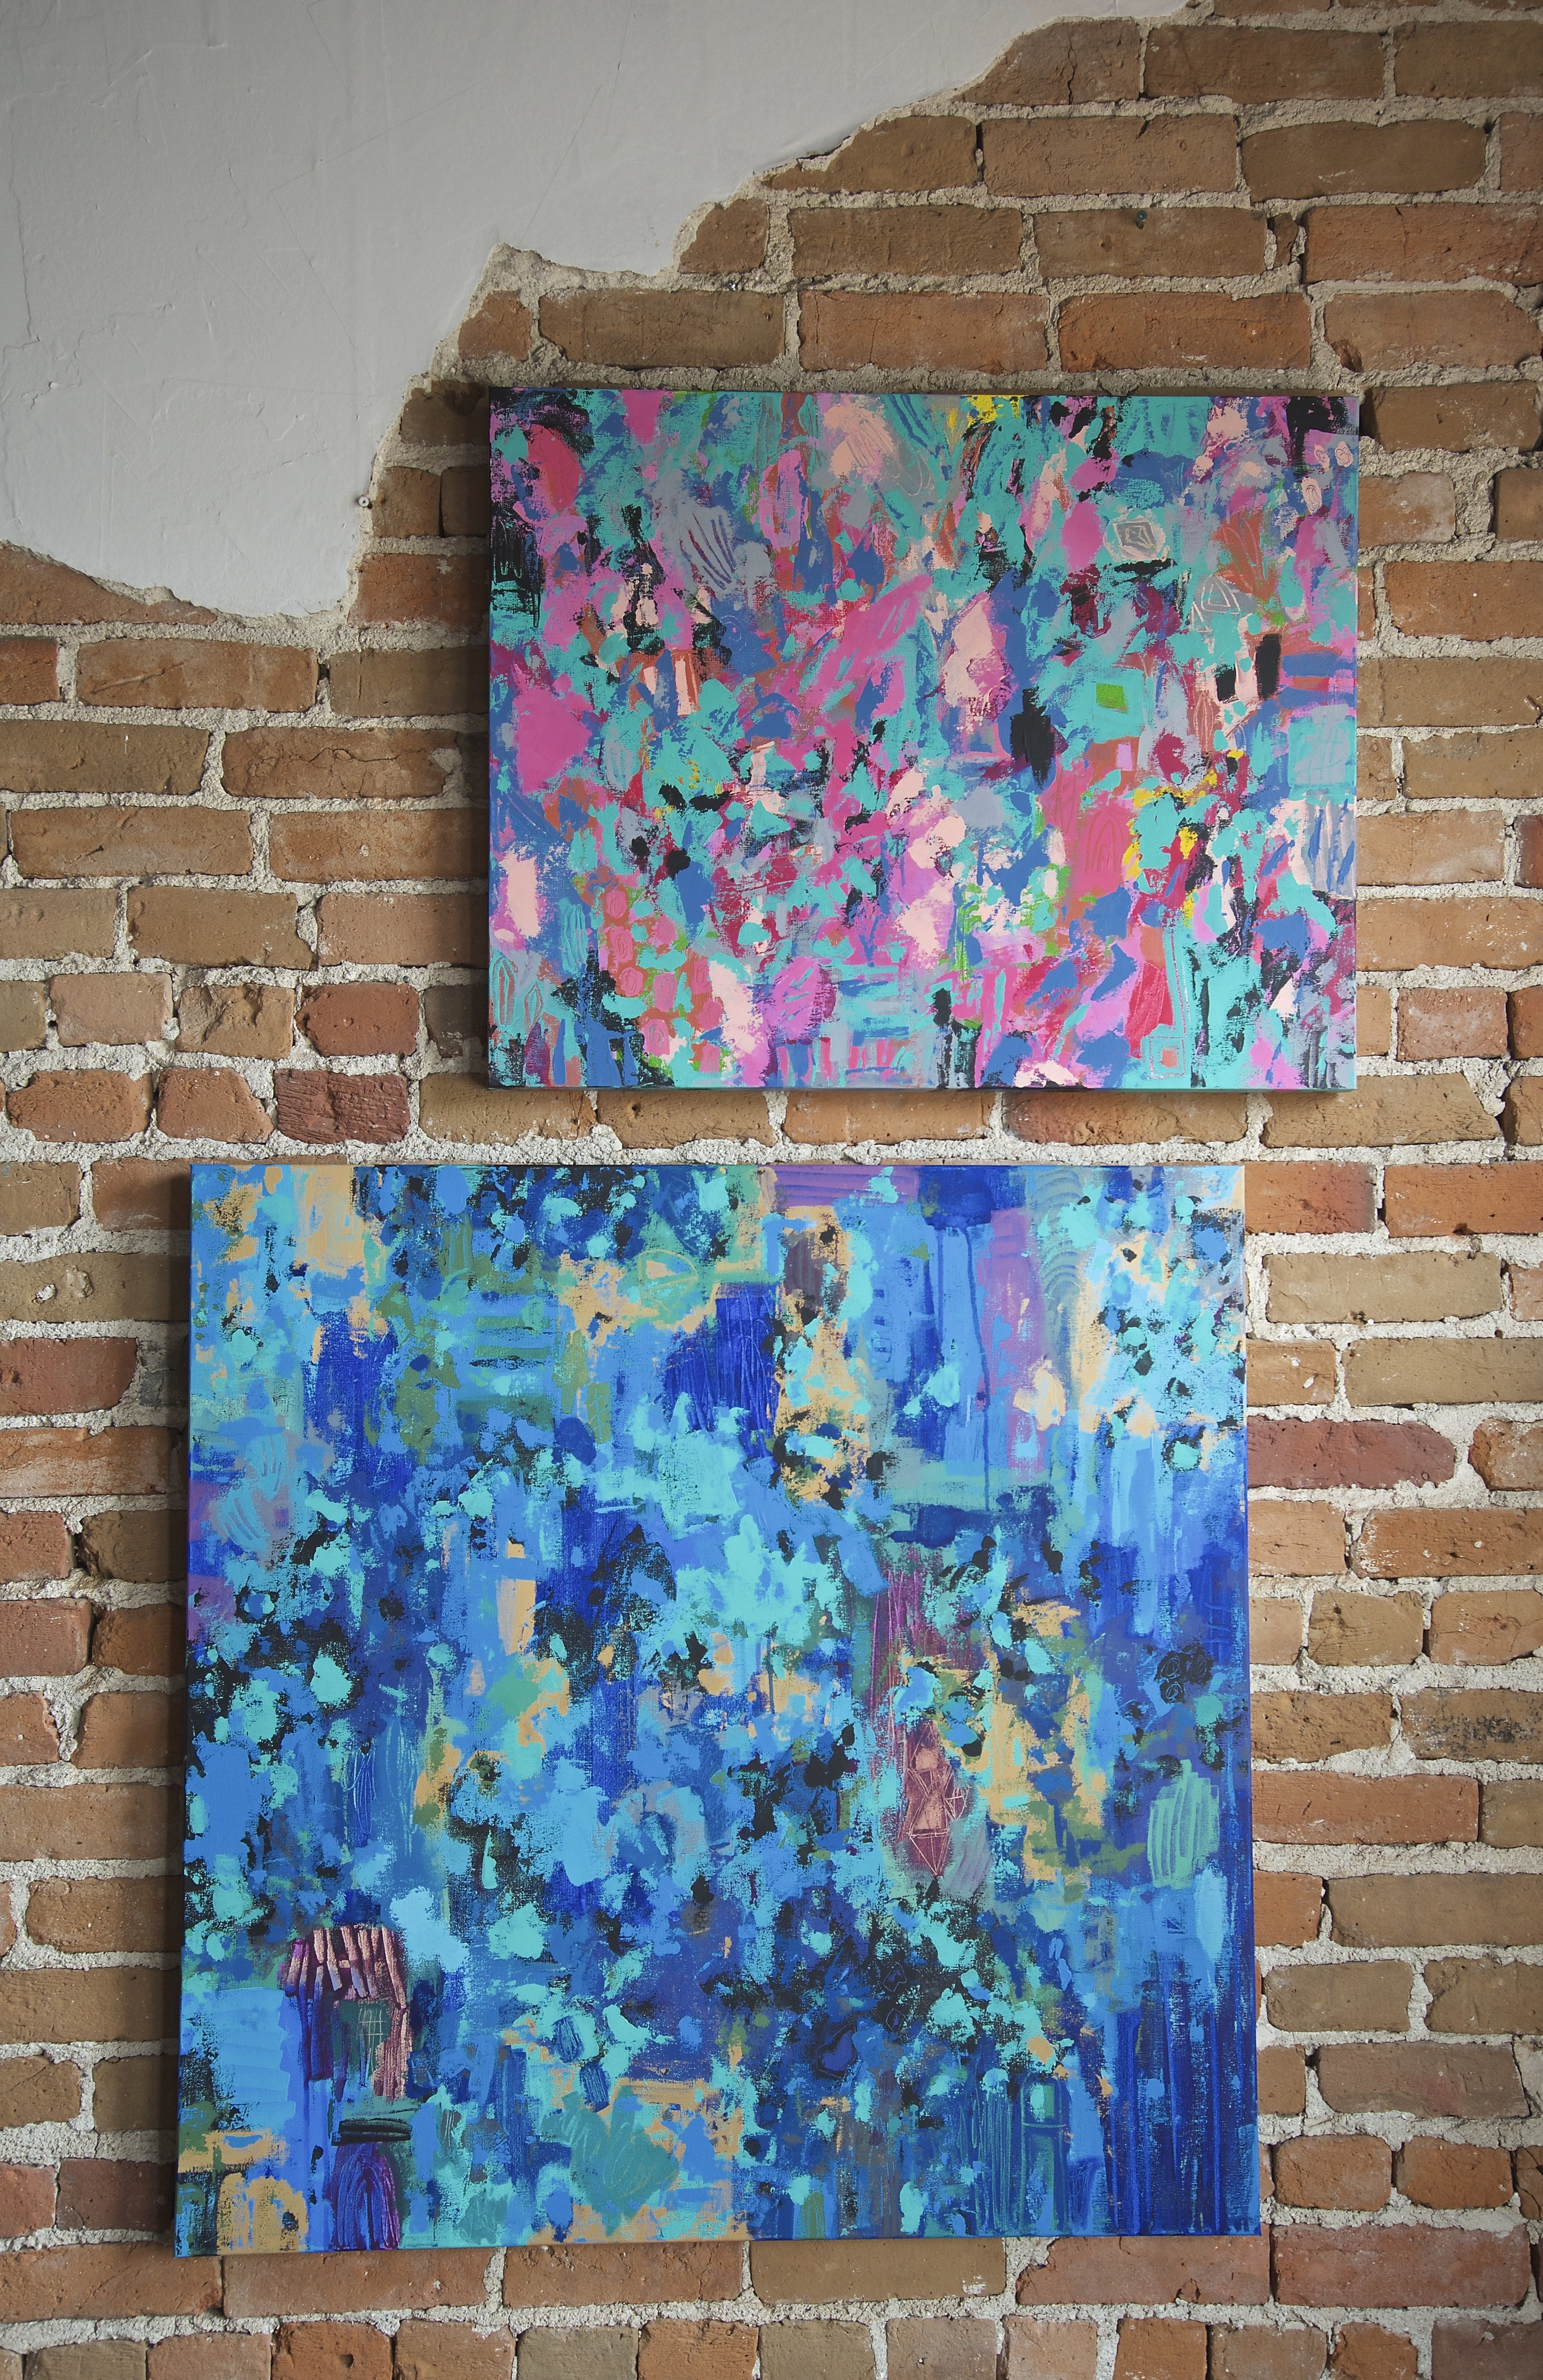 """There are nine paintings in the show. Here is a glimpse at two of my favourites """"Casual Party"""" (30""""w x 24""""H)and """"Make Some Noise"""" (36""""w x 36""""h) Isn't the wall amazing!"""